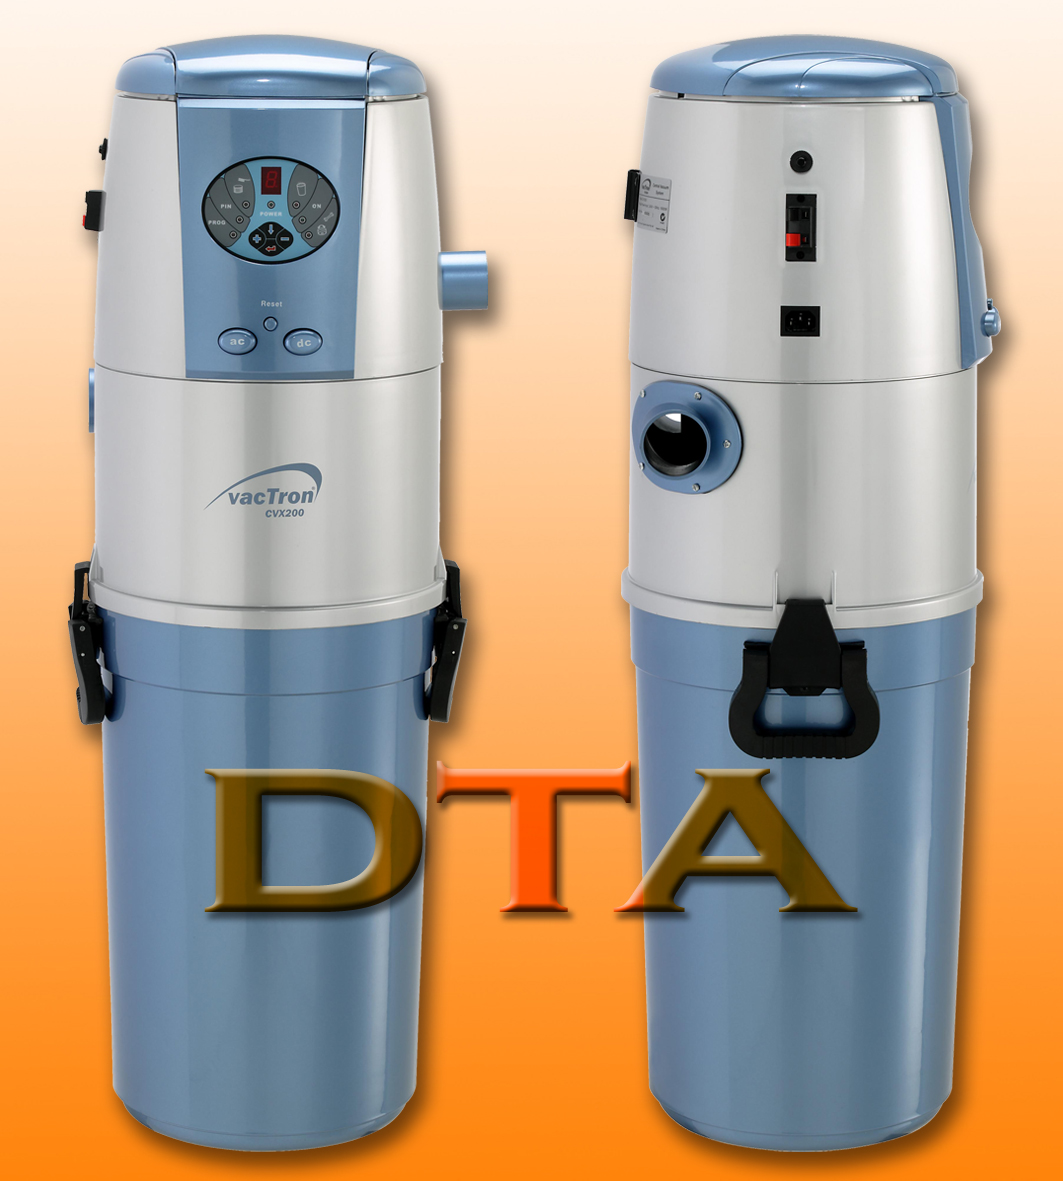 Ducted Vacuums